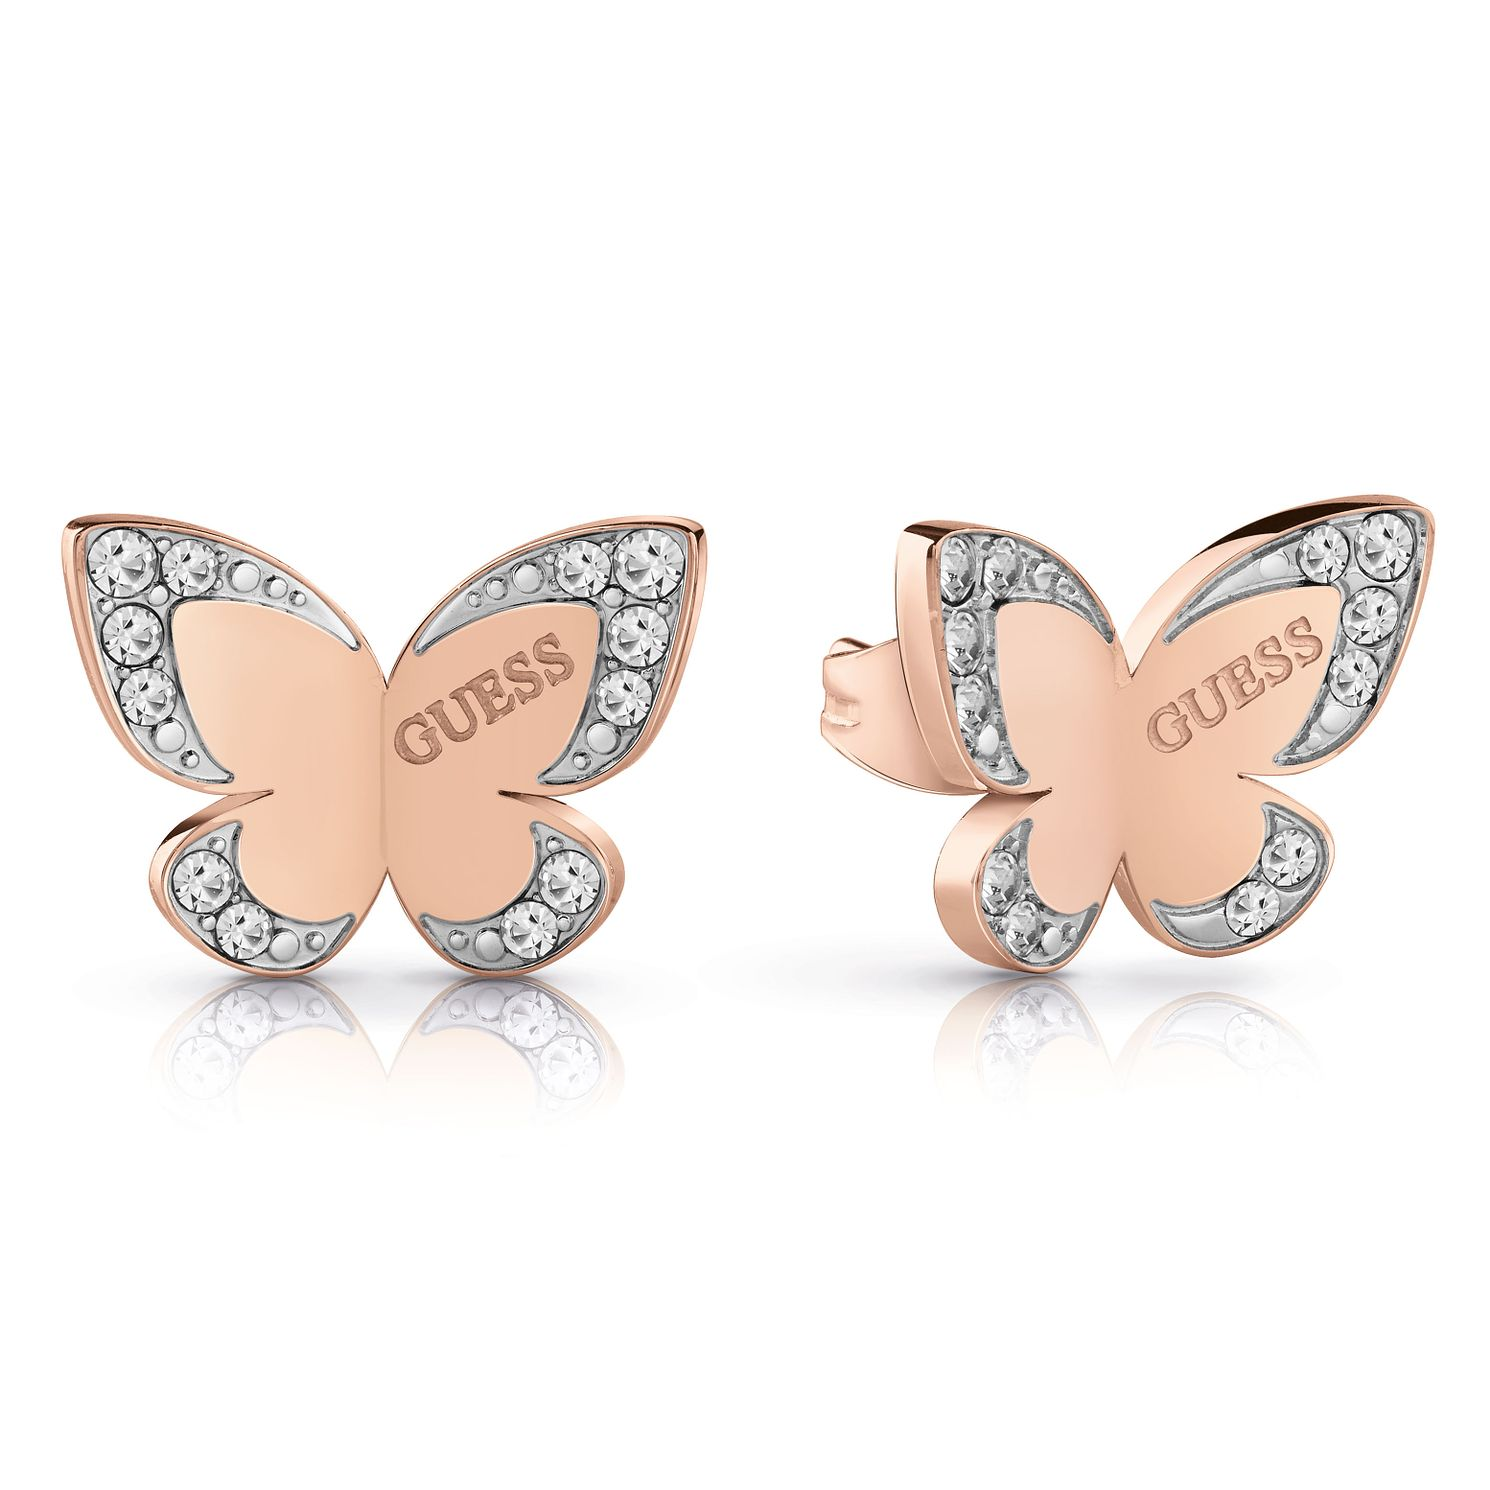 Guess Two Tone Swarovski Crystal Butterfly Stud Earrings - Product number 4103335